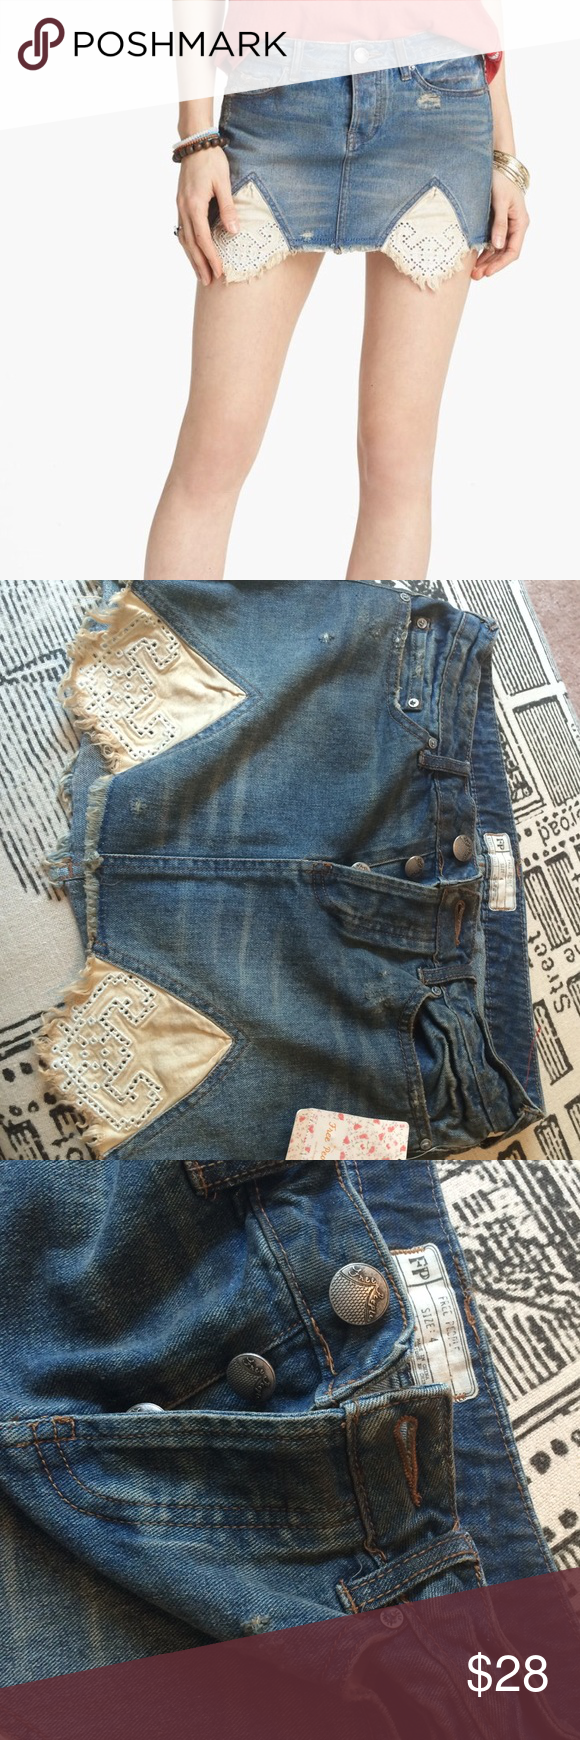 "Free People denim mini skirt NWTs Free People denim ""tire swing"" mini skirt. Size 4 new with tags, cute little summer skirt with lace detail in the front, distressing around the front pockets and a button fly. 11 inches long, inside wIst measures 32. Free People Skirts Mini"